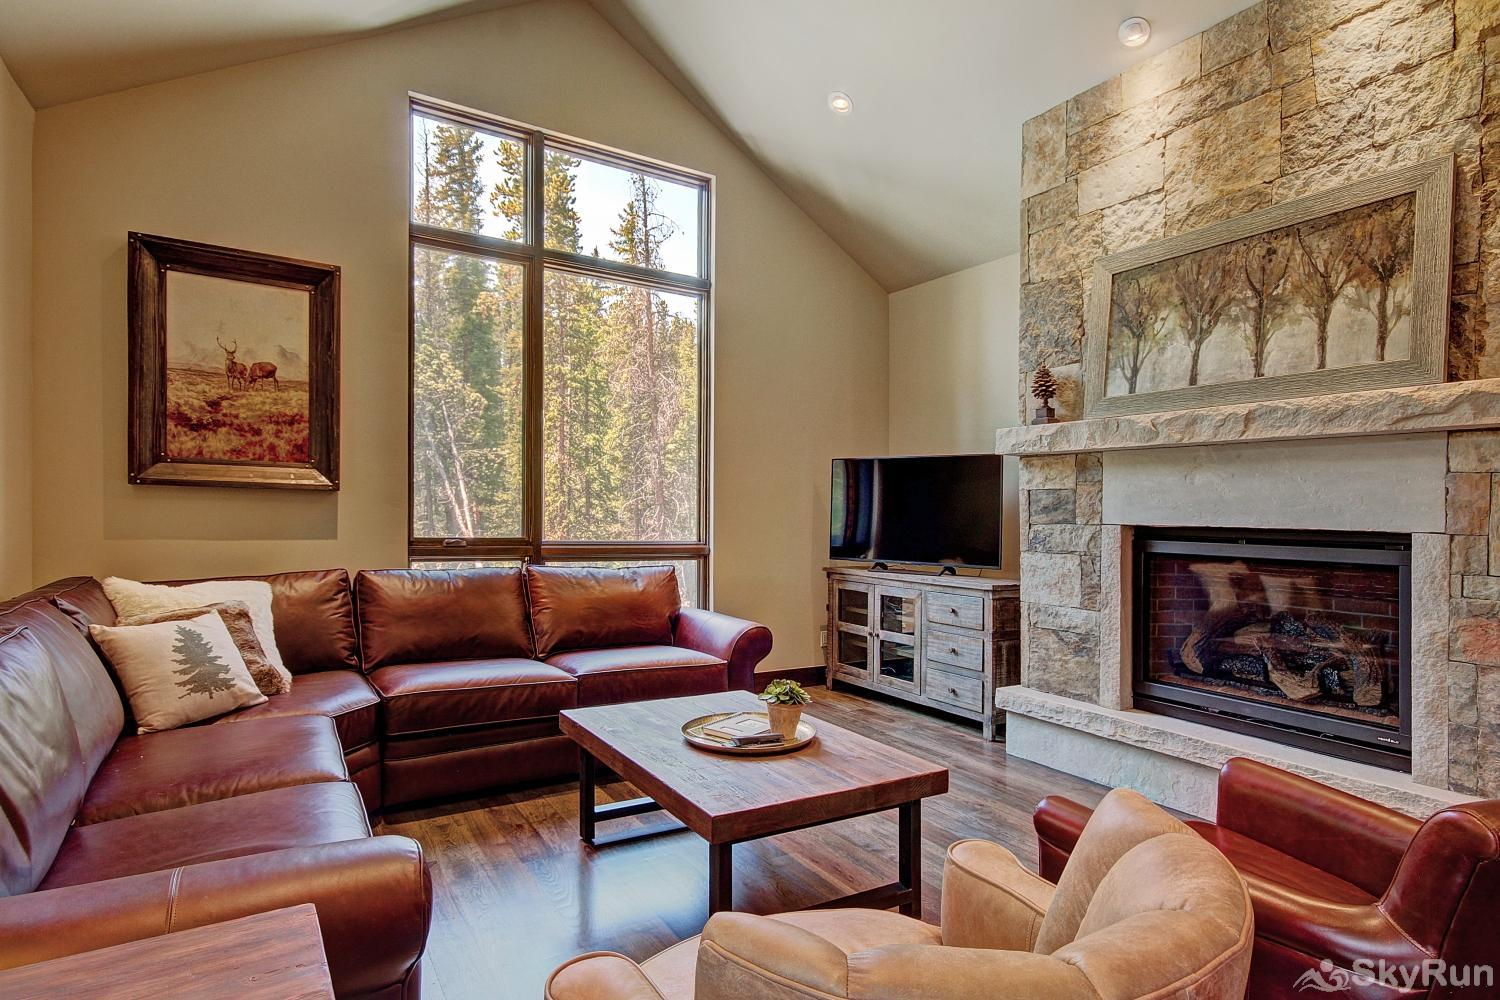 River's Edge Retreat Stay warm and cozy by the elegant gas fireplace